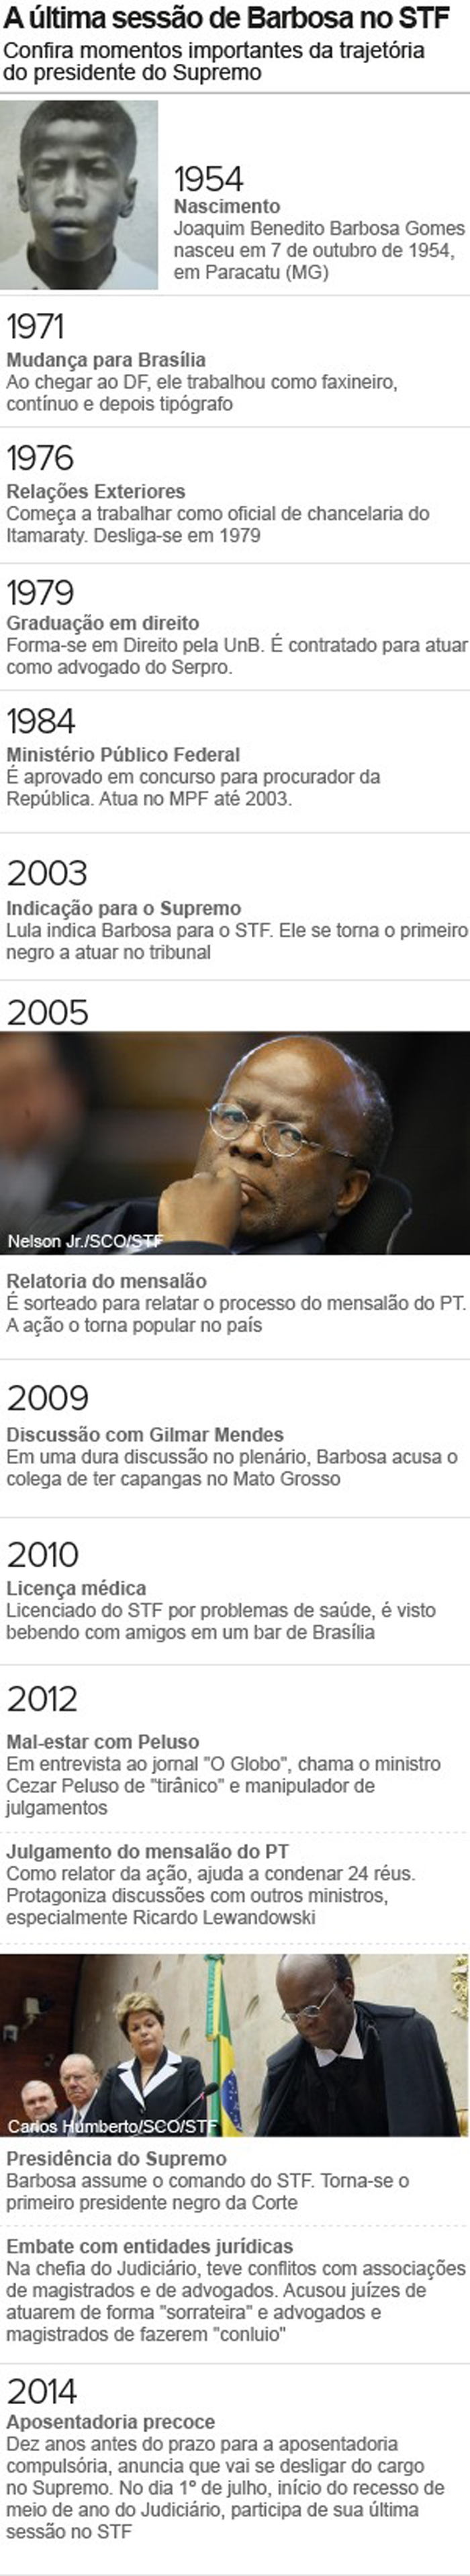 Joaquim Barbosa participa nesta ter軋-feira (01) da 伃tima sess縊 como ministro do Supremo Tribunal Federal